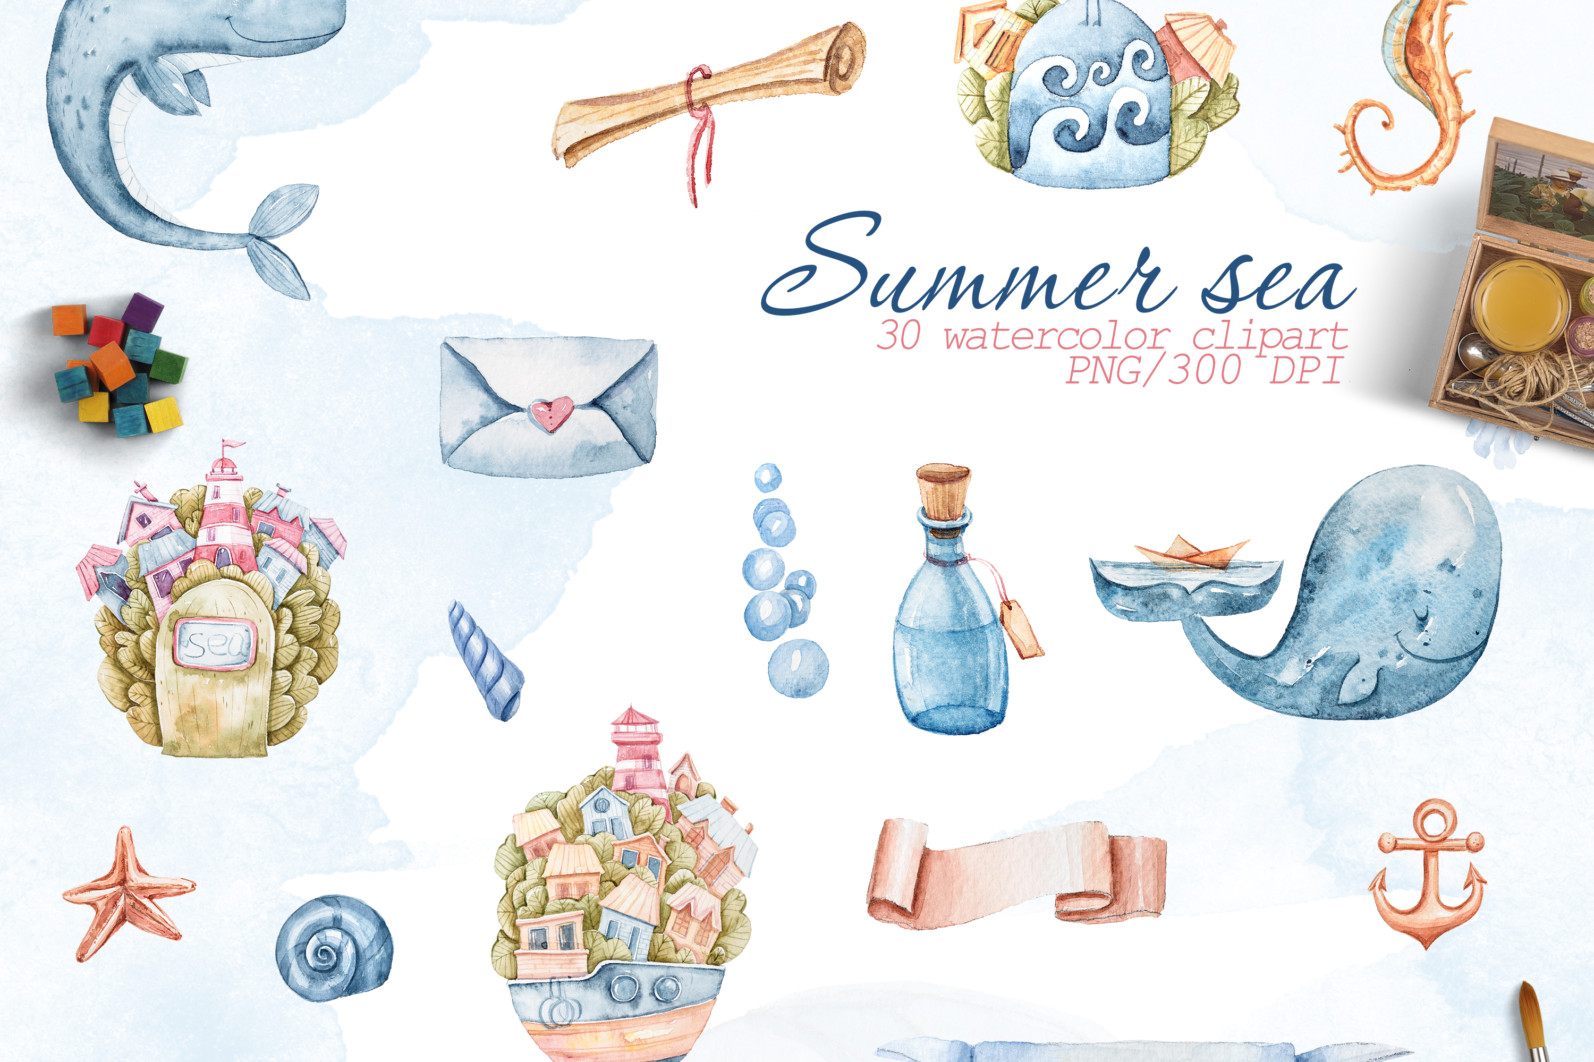 Watercolor nautical sea animals nursery clipart for kids - preview2 4 scaled -